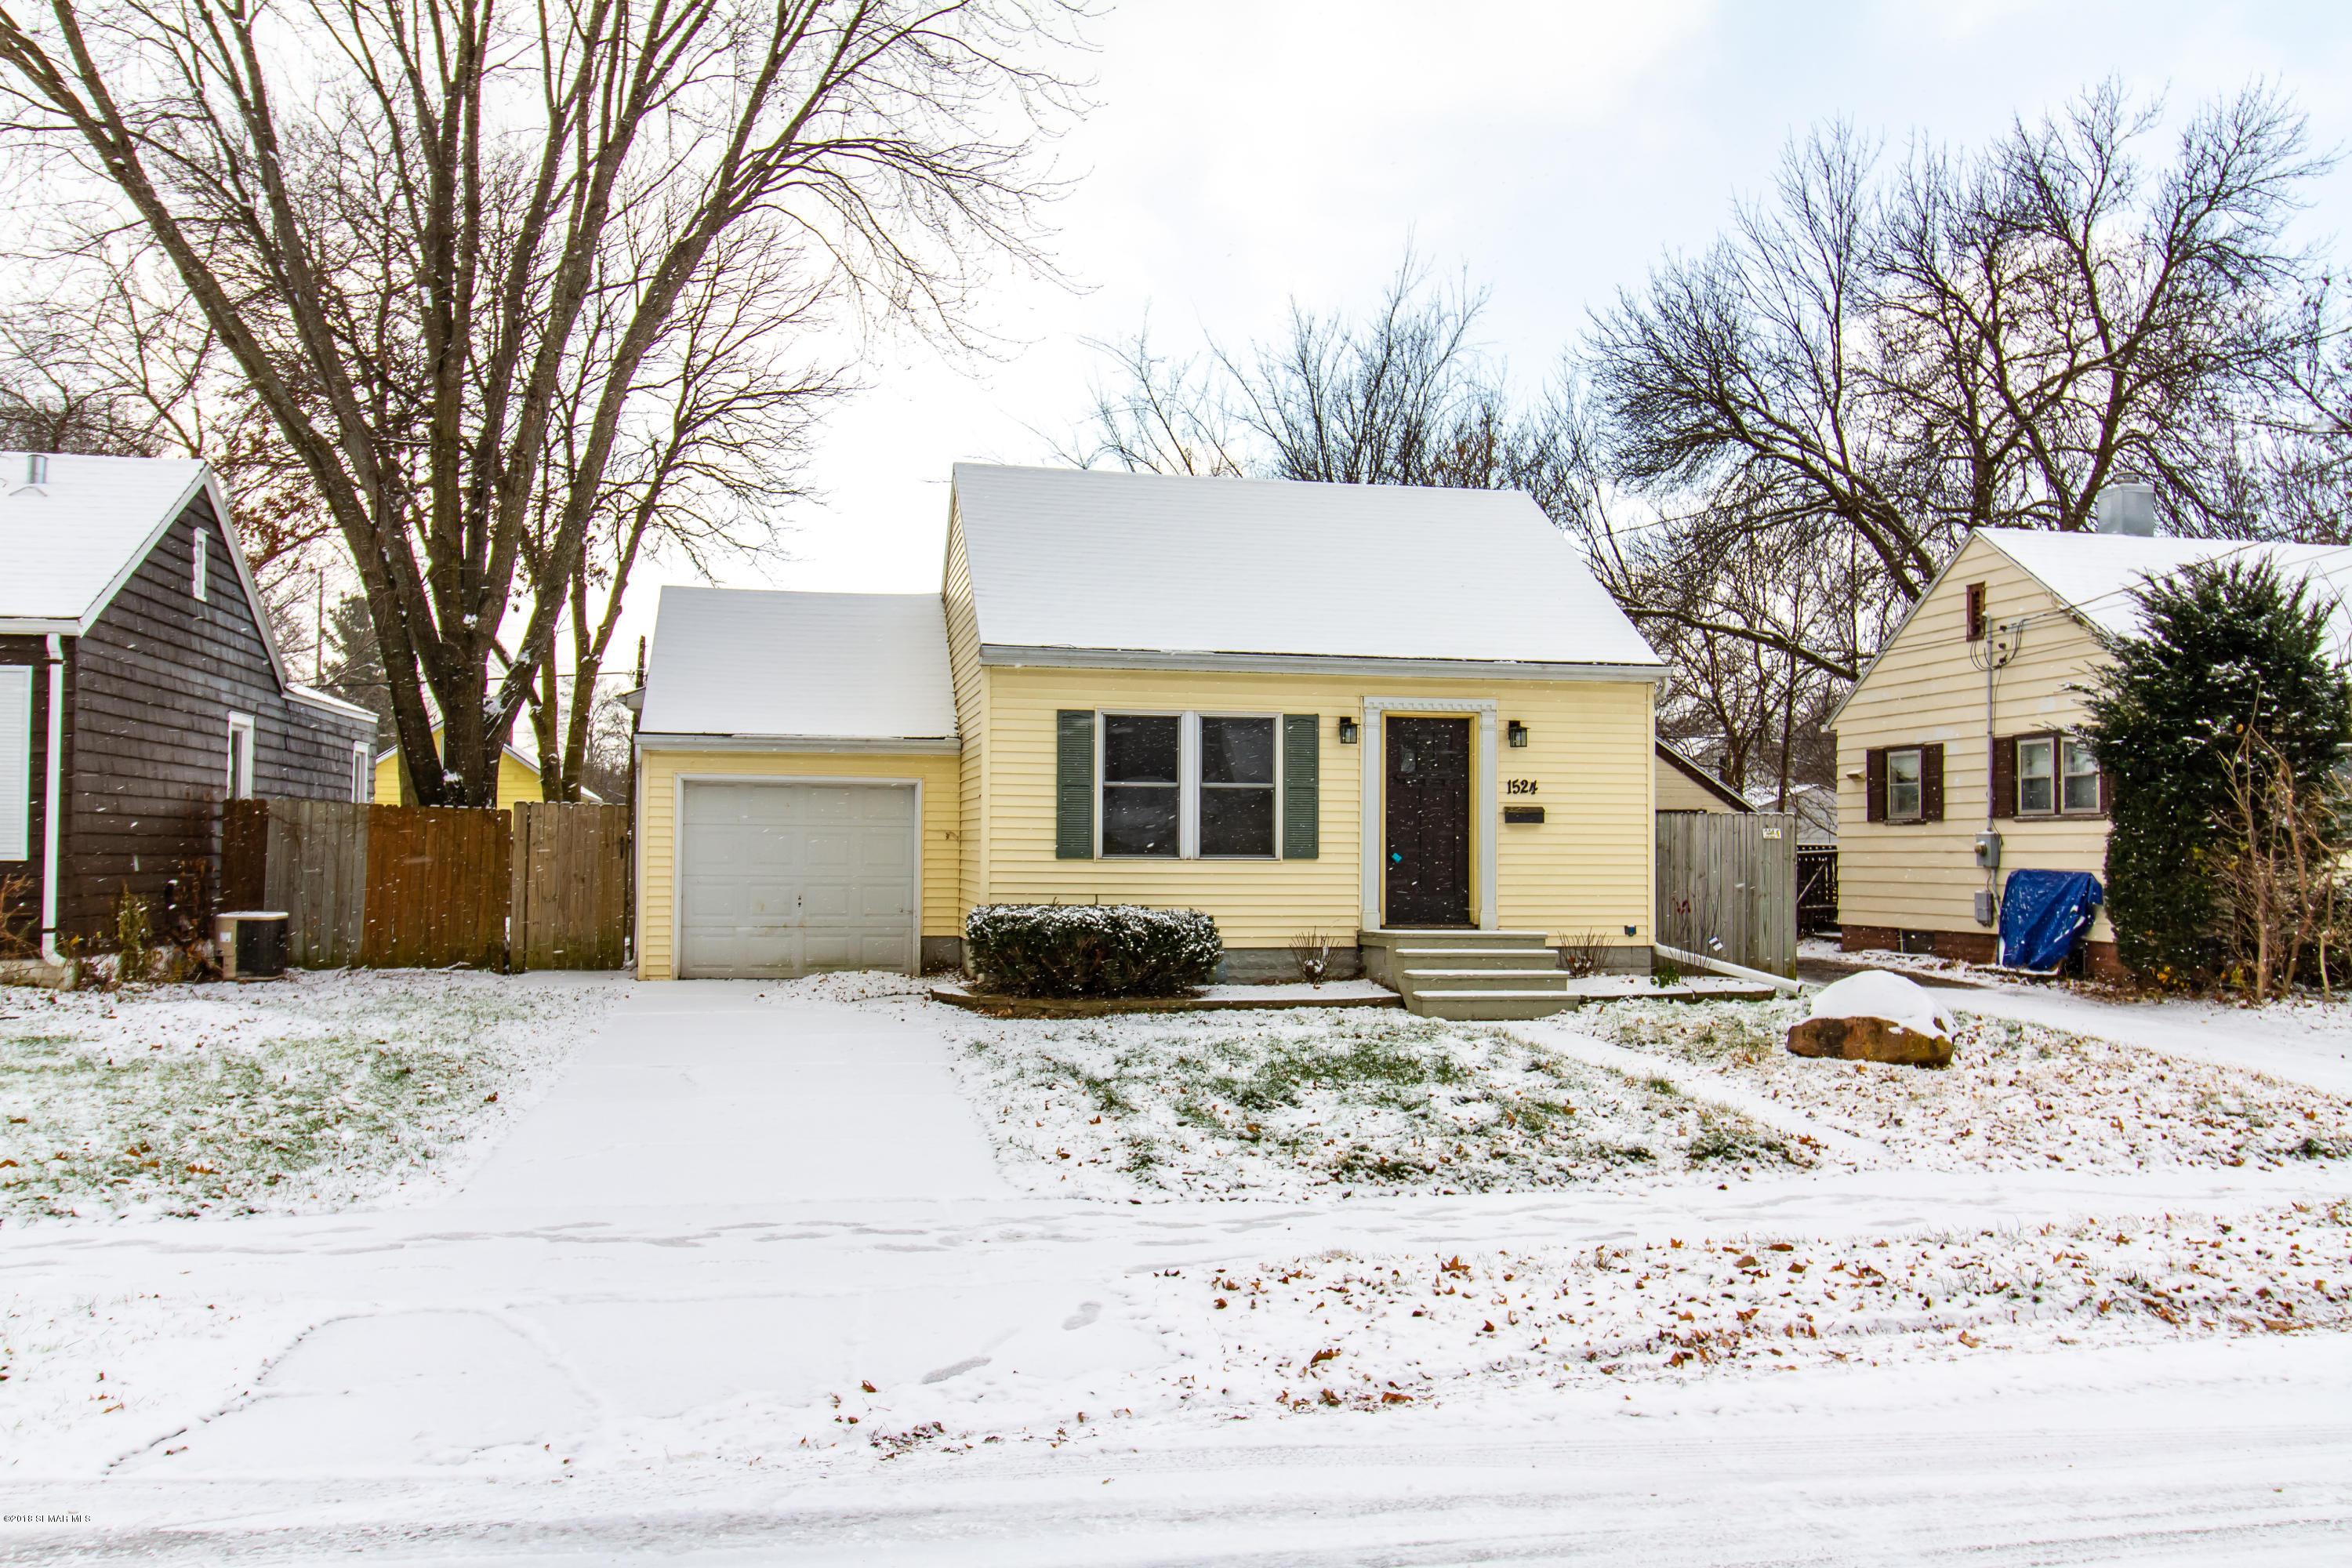 1524 4th Street NE, Rochester in Olmsted County, MN 55906 Home for Sale